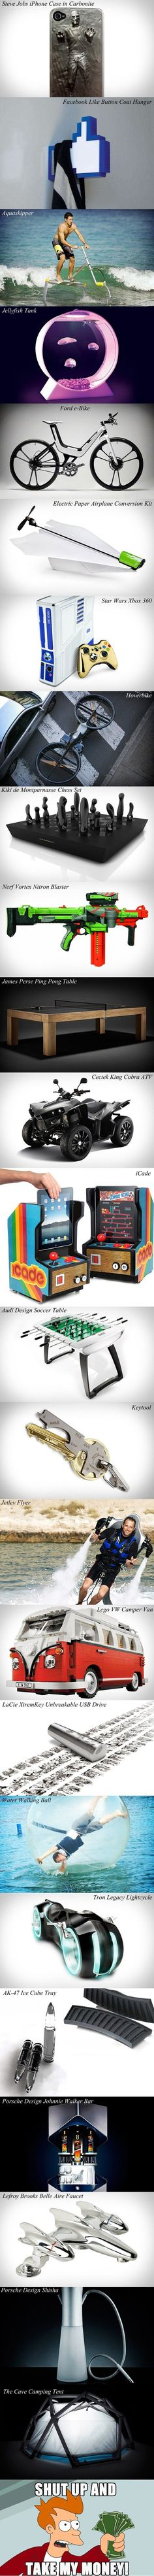 Cool inventions!